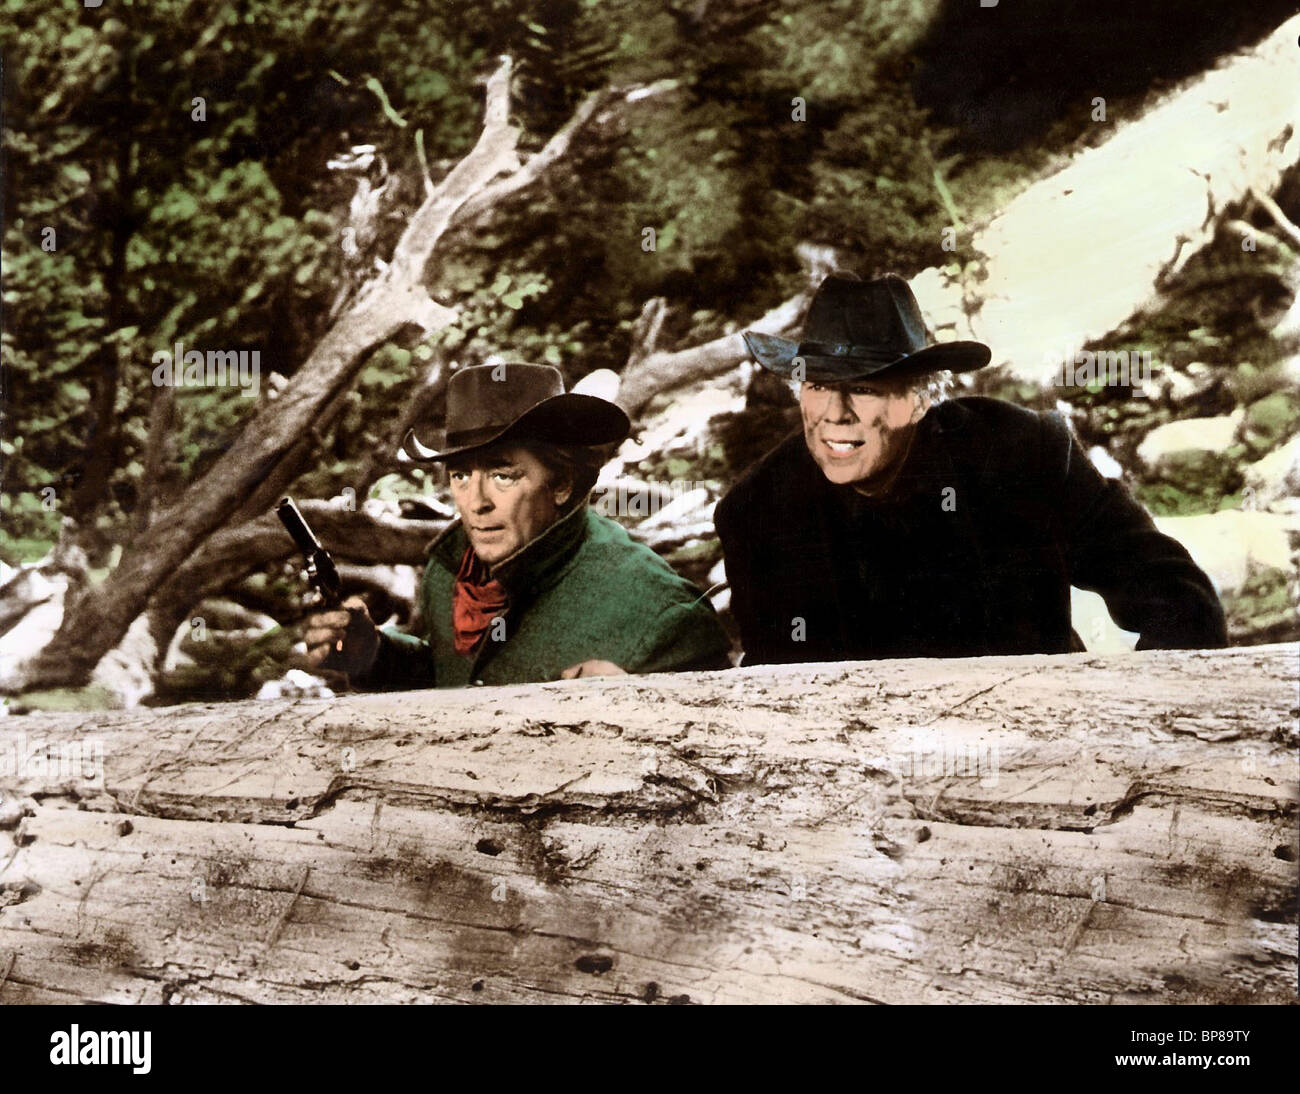 ROBERT MITCHUM GEORGE KENNEDY THE GOOD GUYS AND THE BAD GUYS (1969) - Stock Image